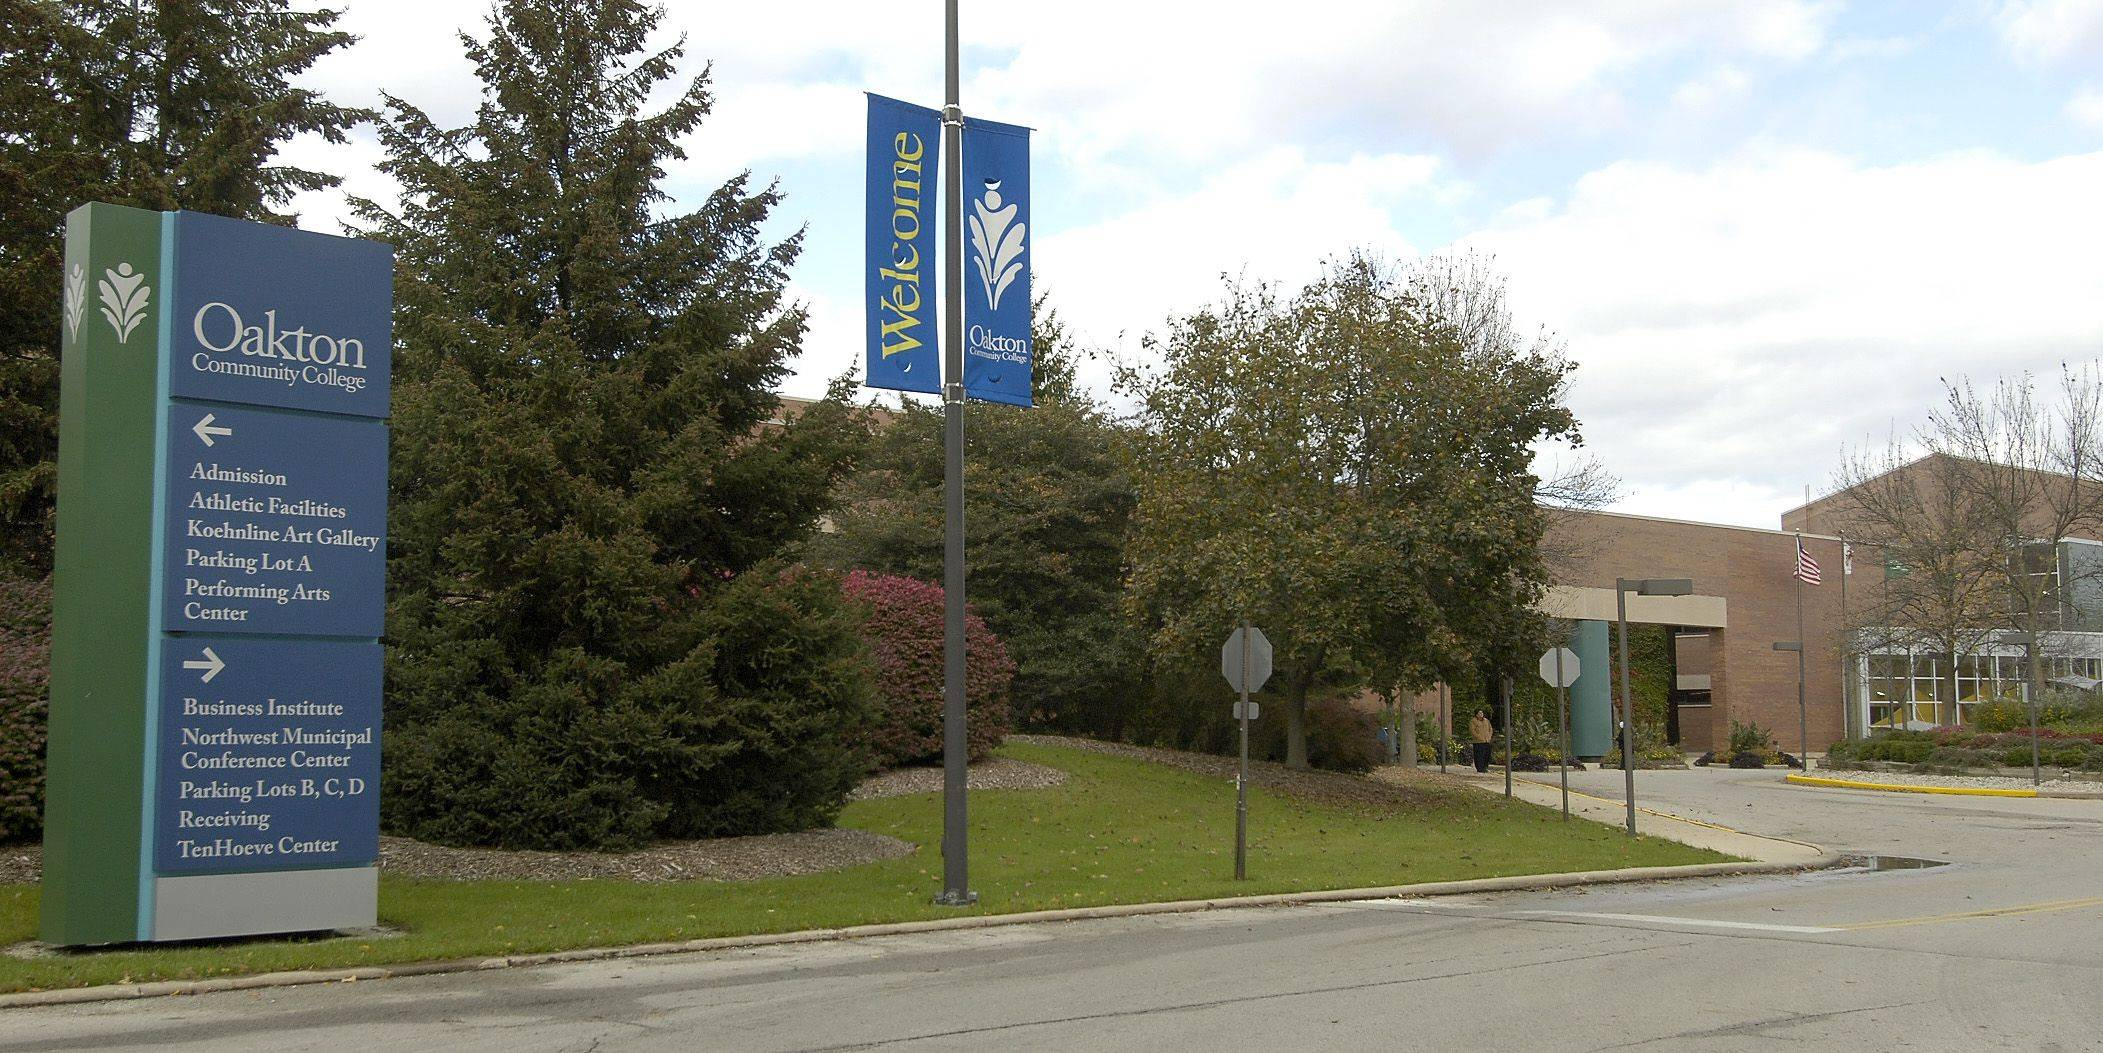 Oakton Community College in Des Plaines is one of the safest college campuses in the nation, according to an annual report by StateUniversity.com.